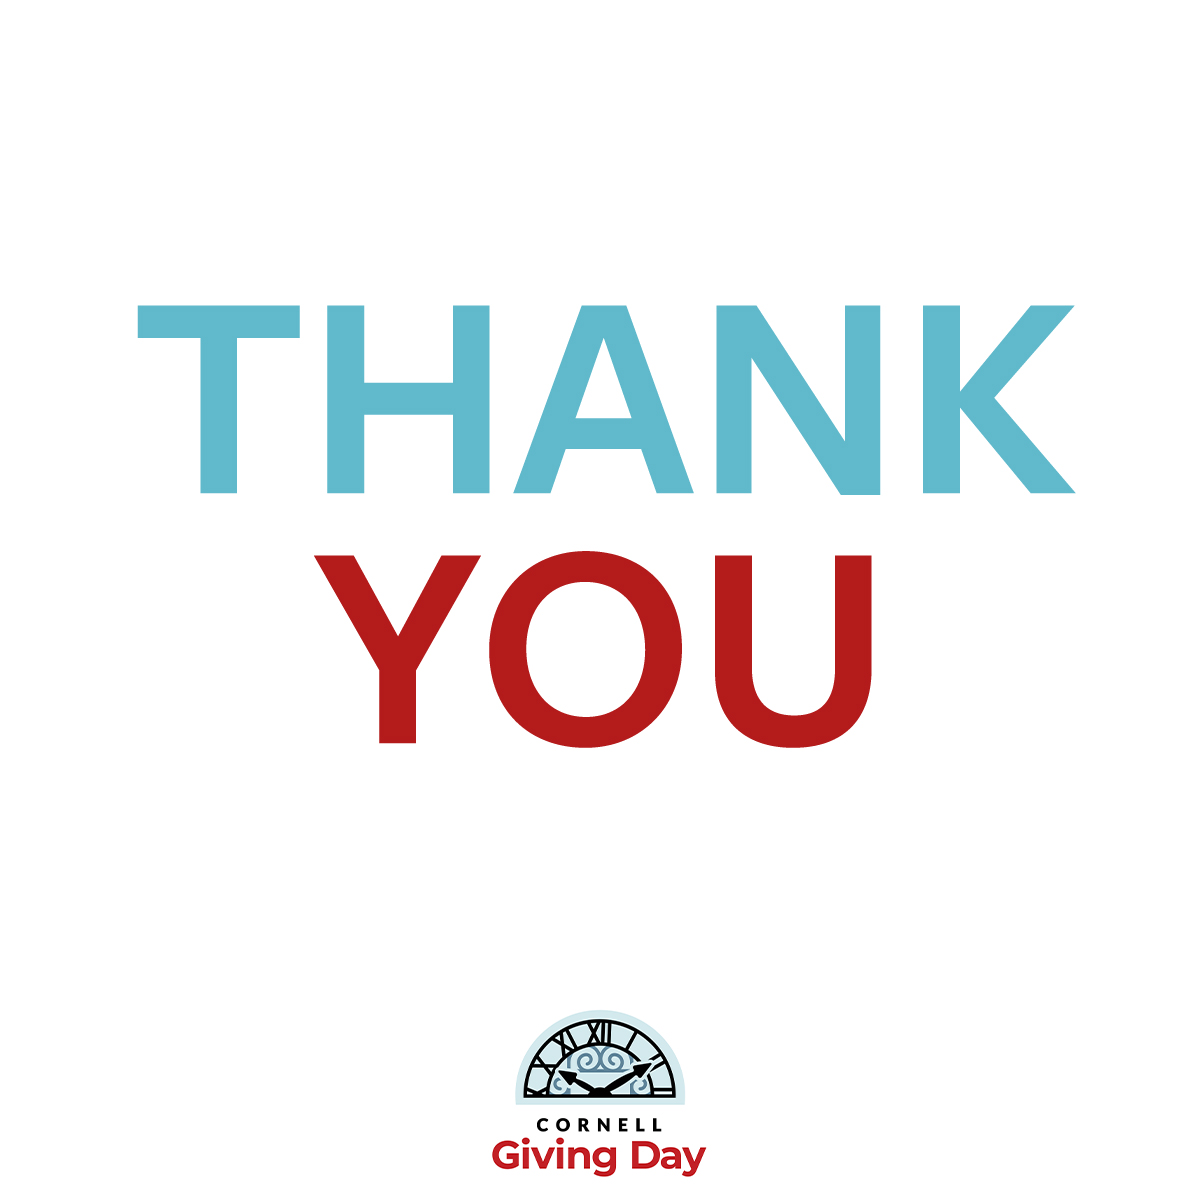 Thank You Image -- THANK YOU written in blue and red with Cornell Giving Day logo